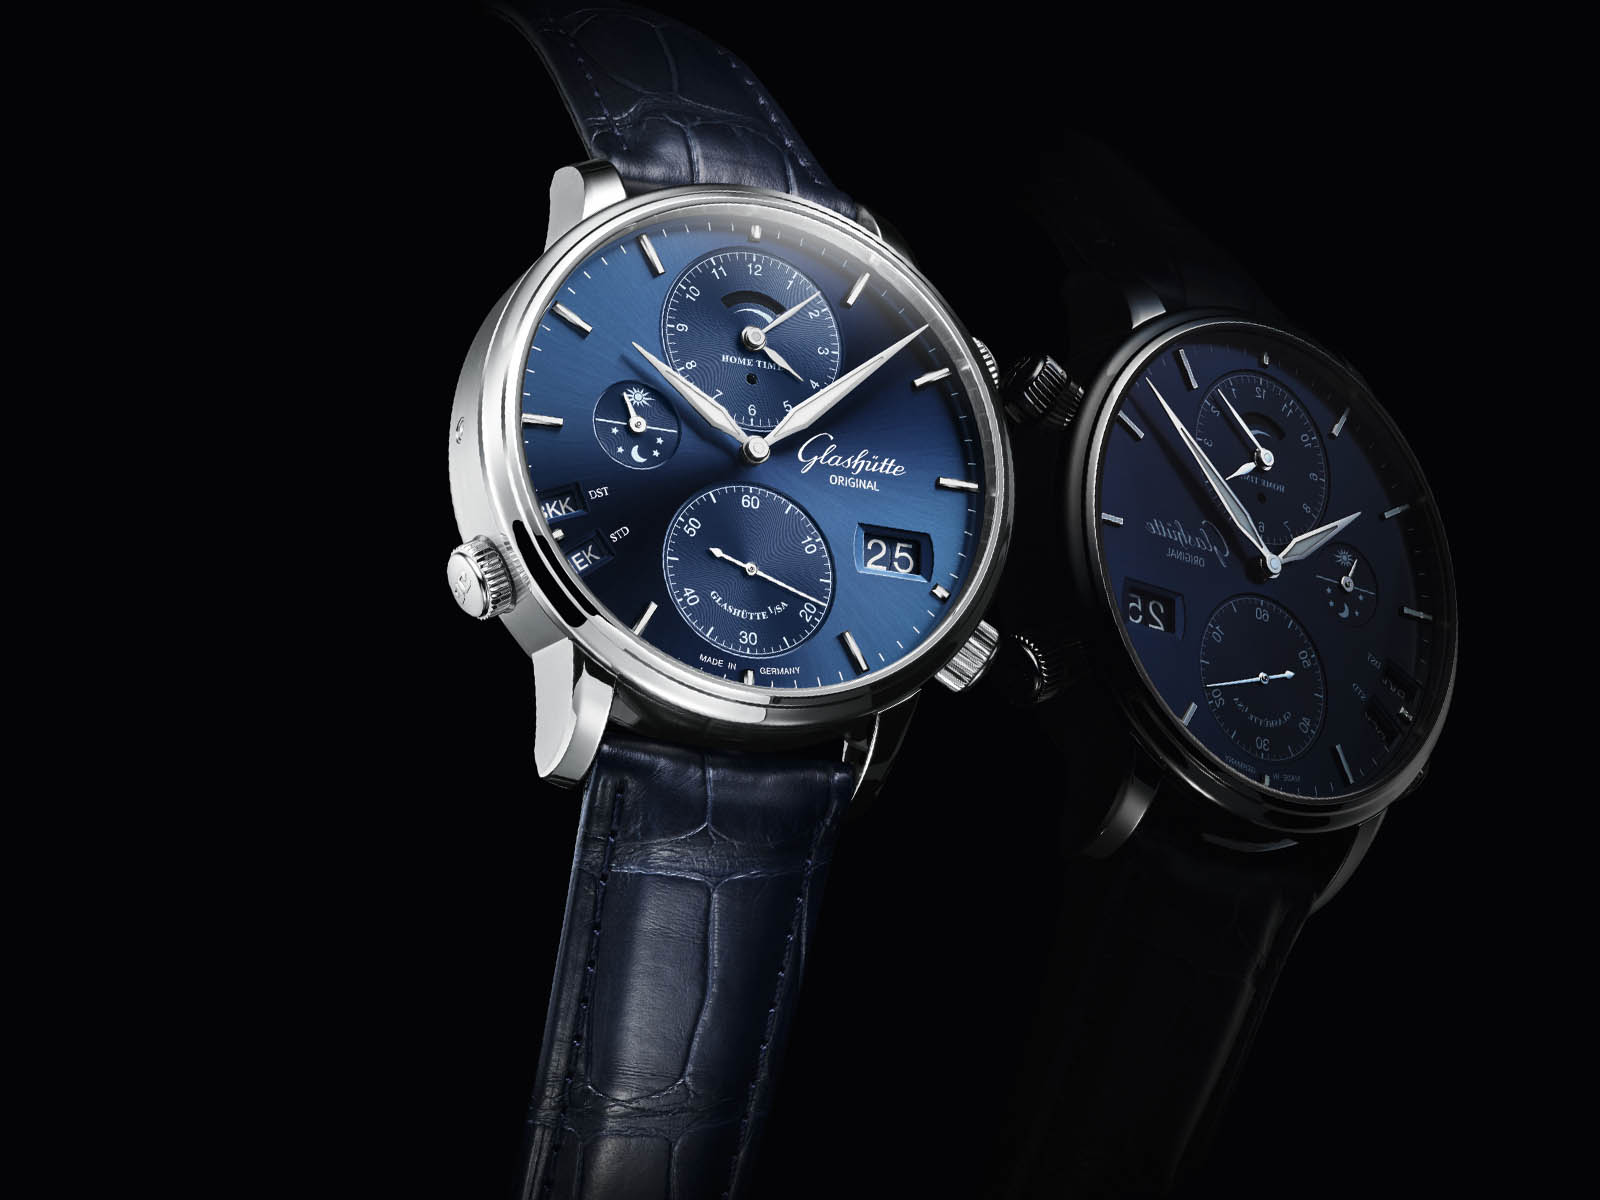 1-89-02-05-02-30-glashutte-original-senator-cosmopolite-midnight-blue-4.jpg